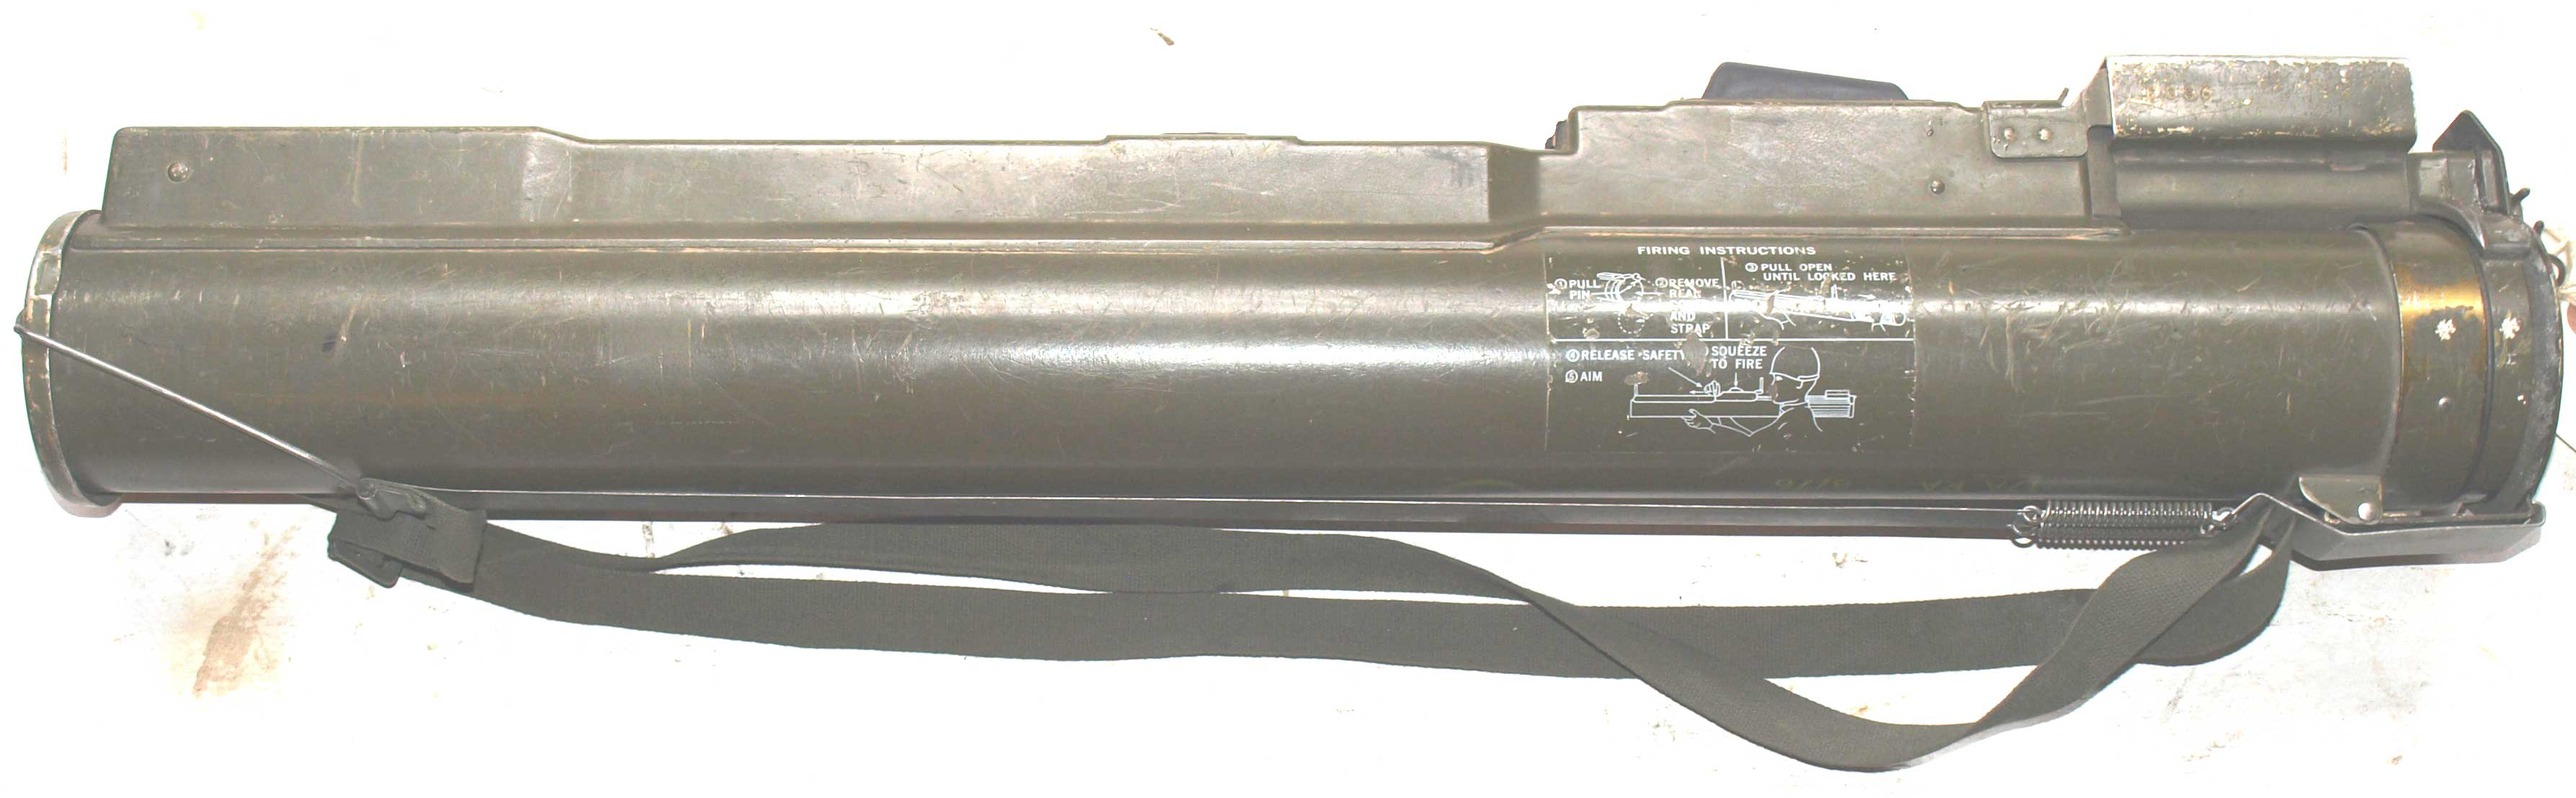 M72 LAWS 66mm Rocket Launcher (0086) REDUCED FROM 295